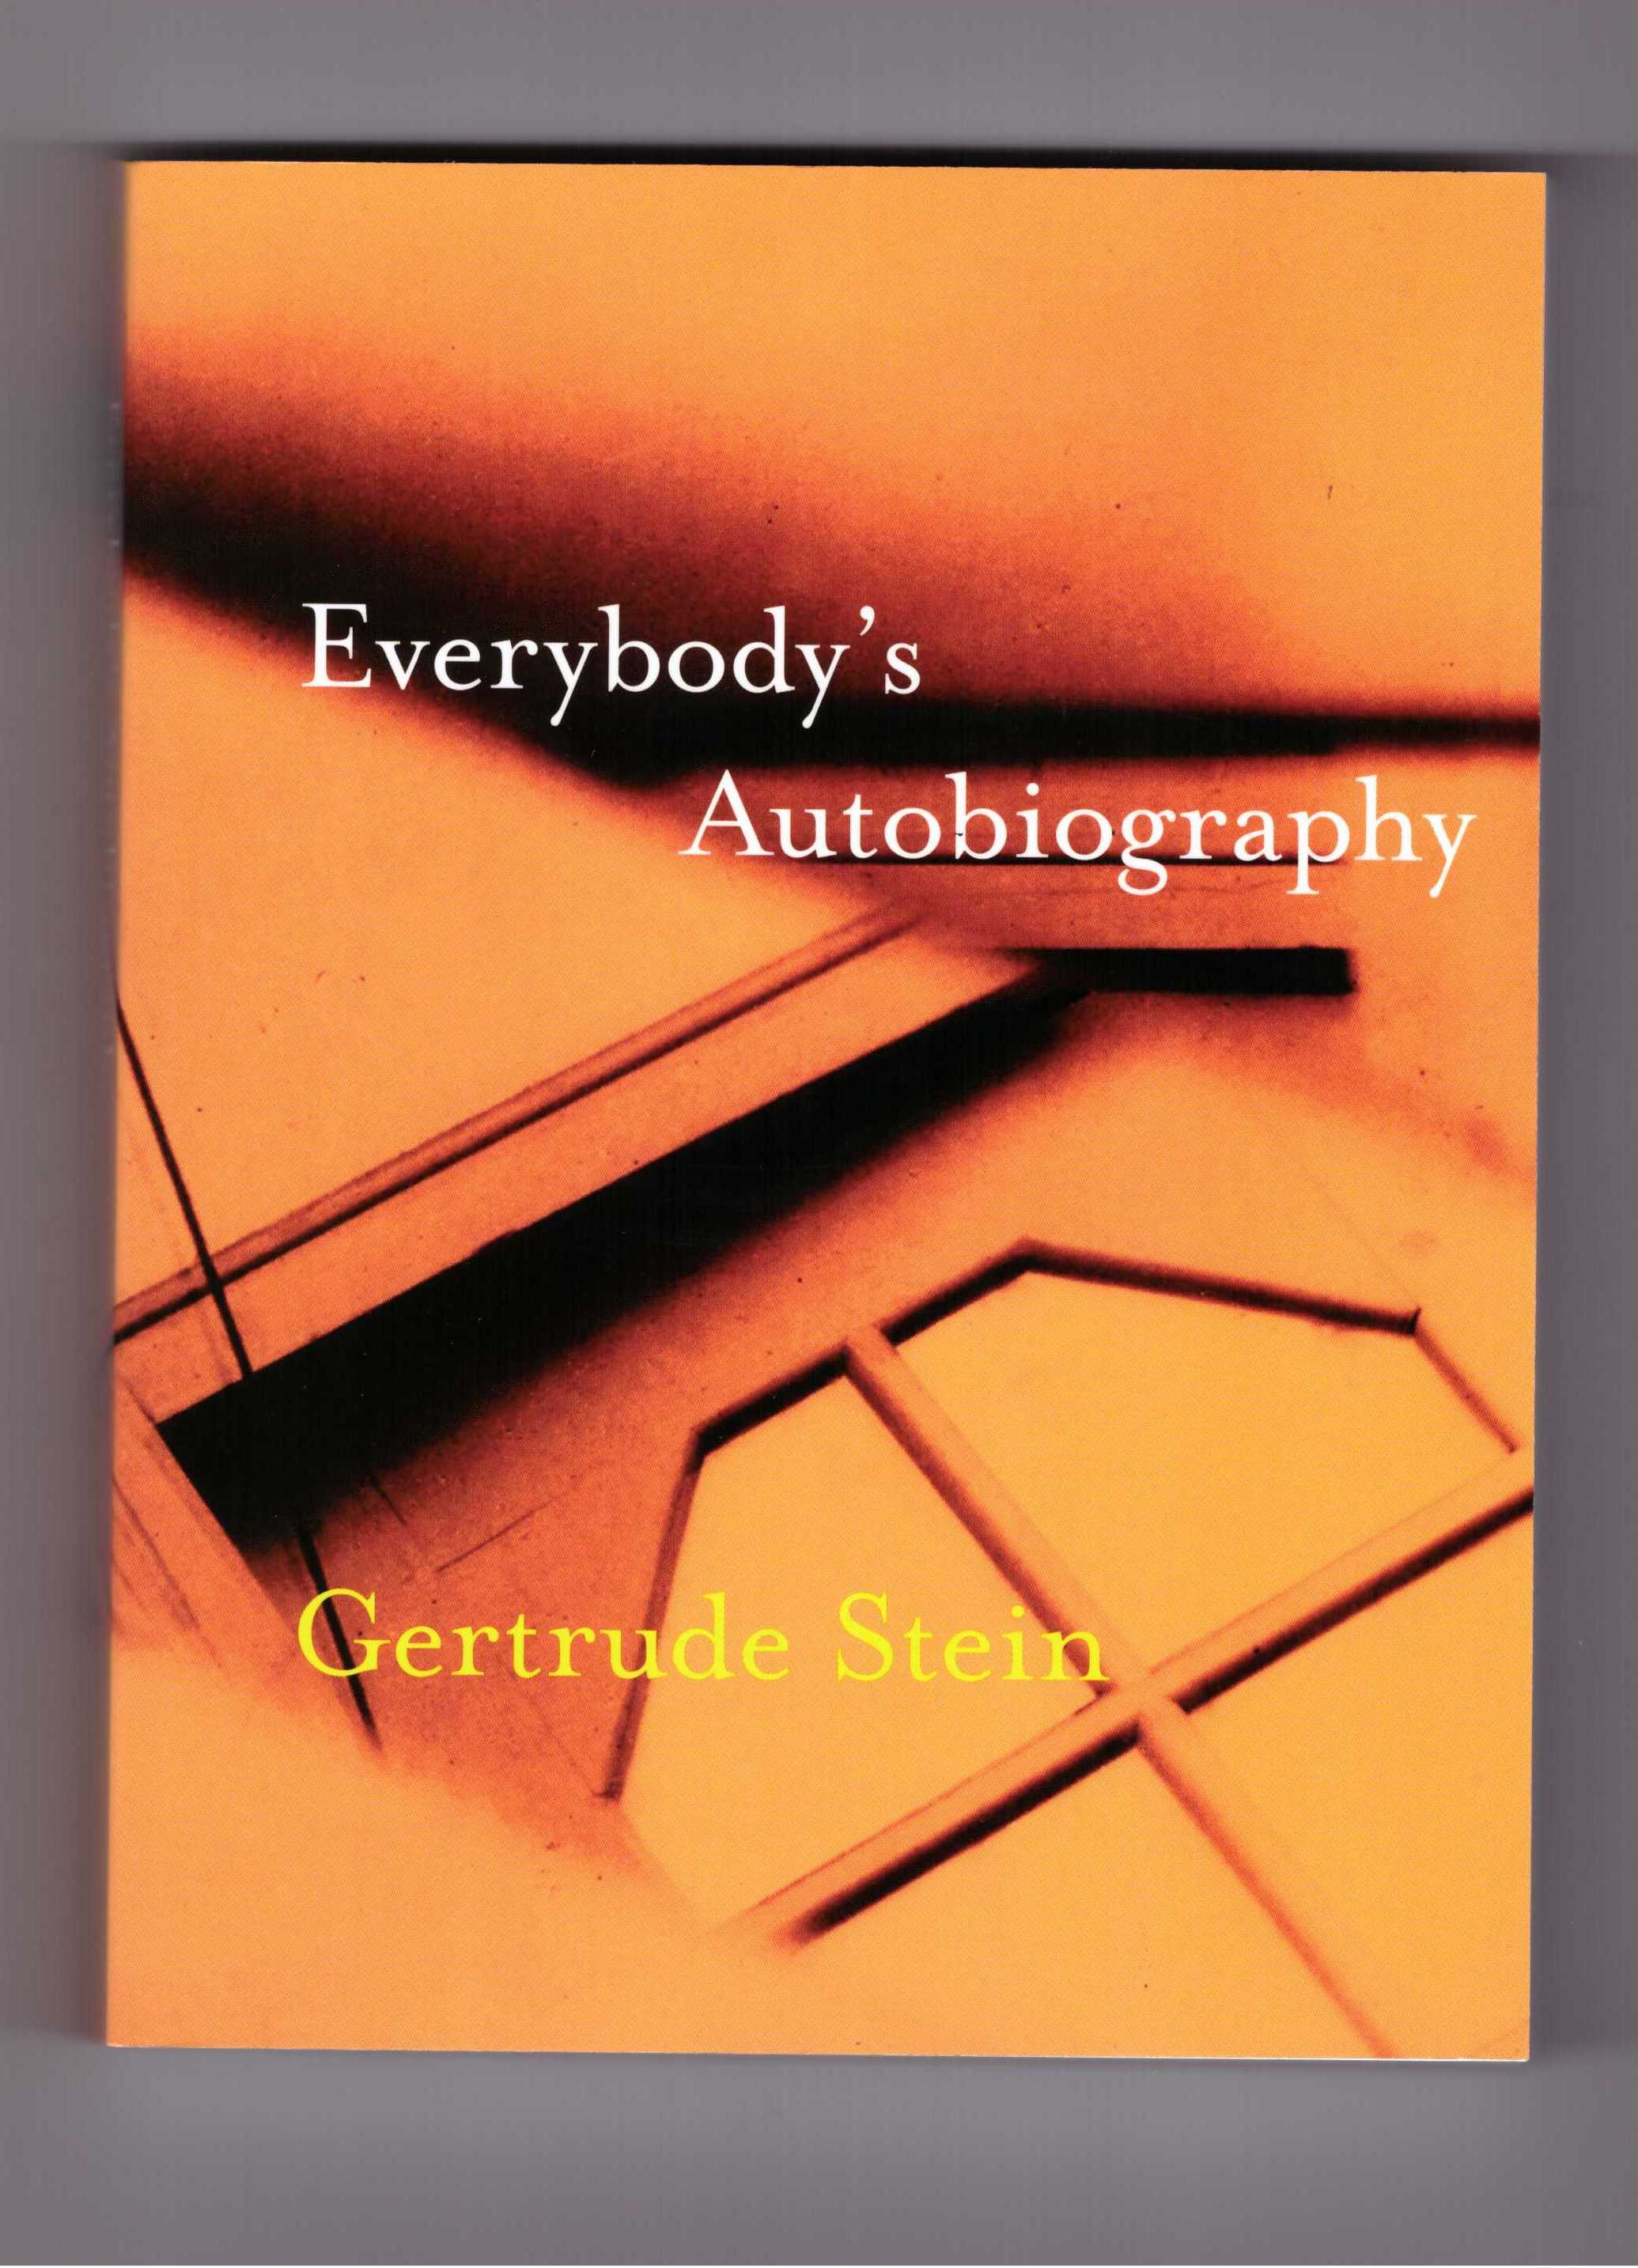 STEIN, Gertrude - Everybody's Autobiography